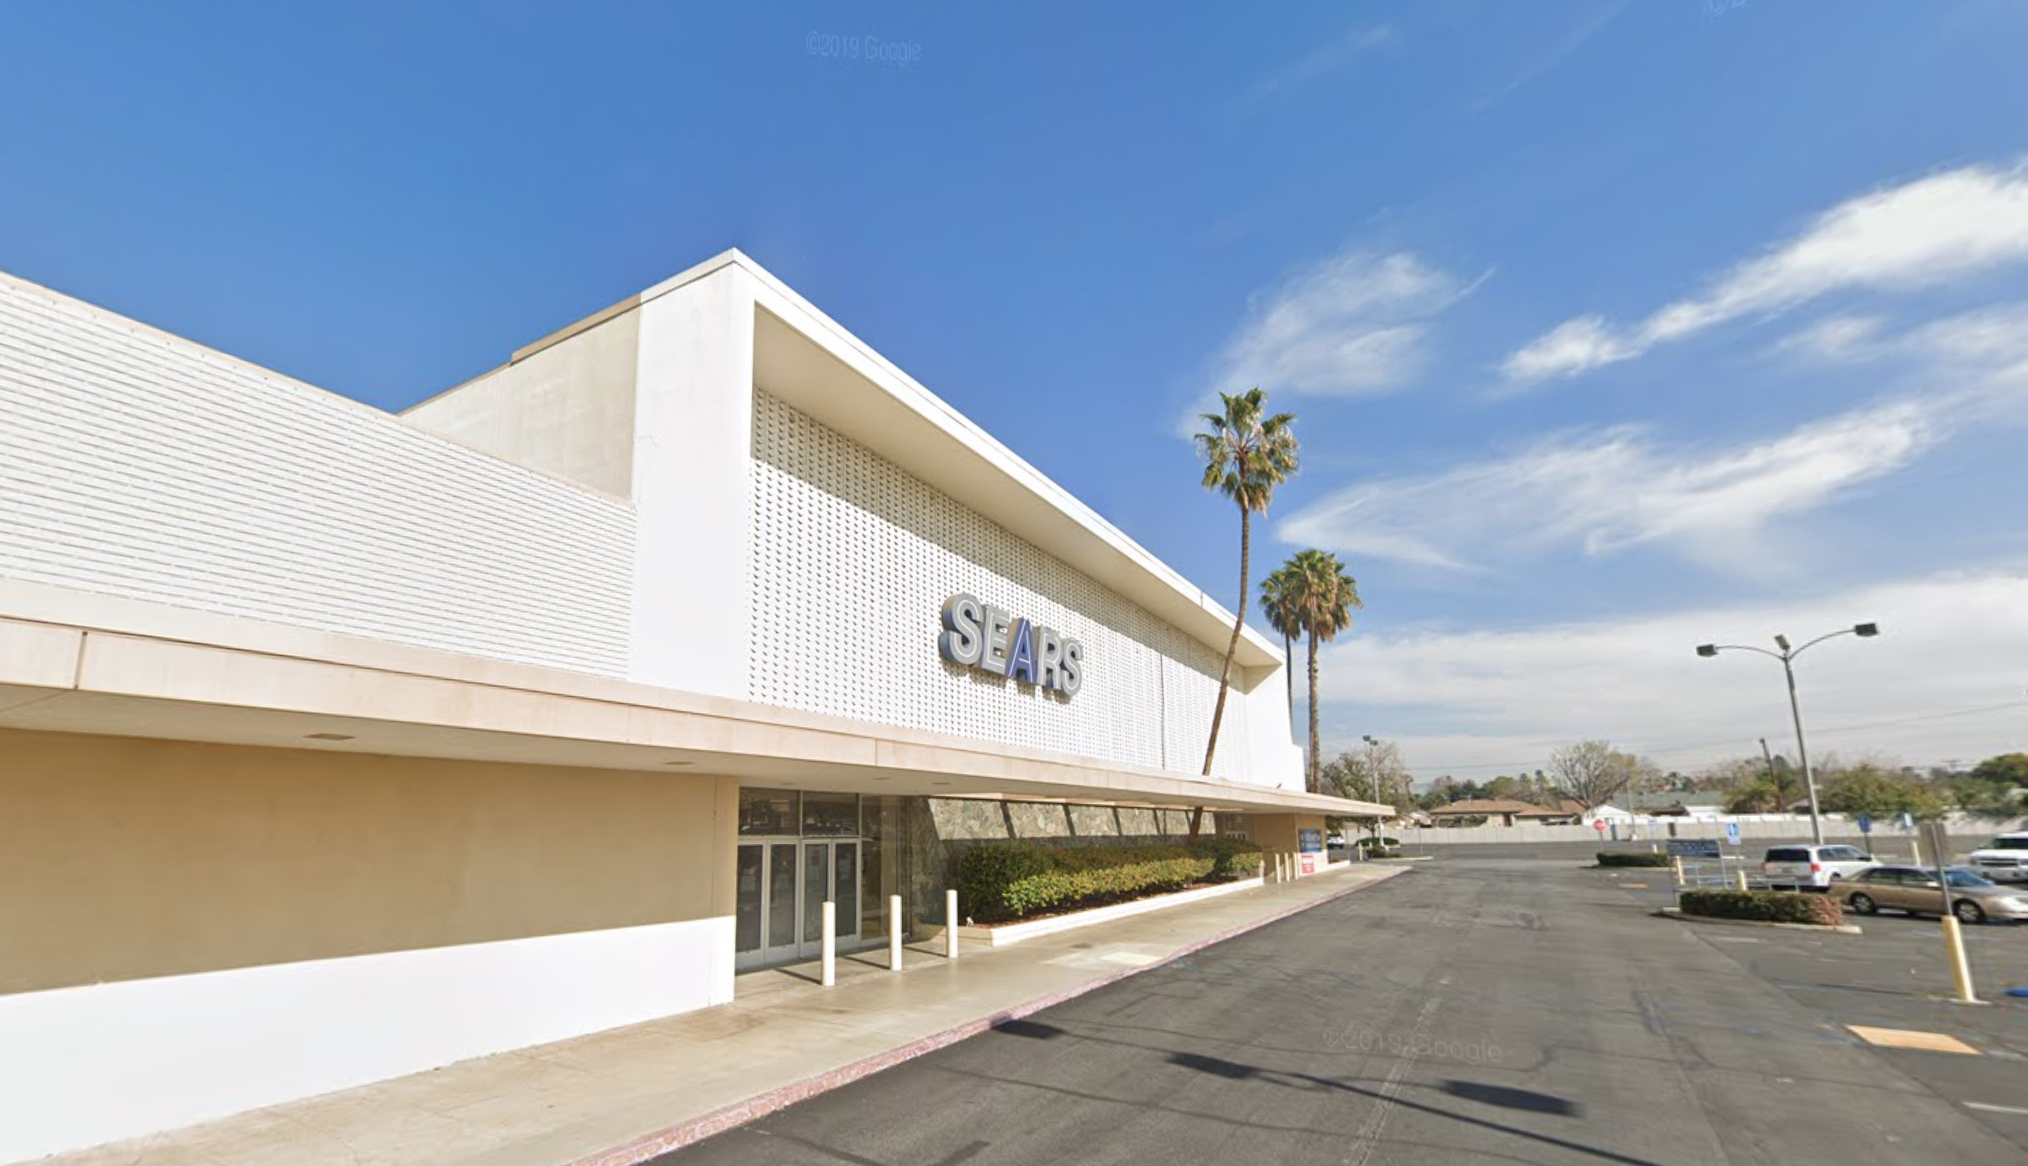 The former Sears building on Arlington Avenue in Riverside is seen in a Google Maps Street View image.